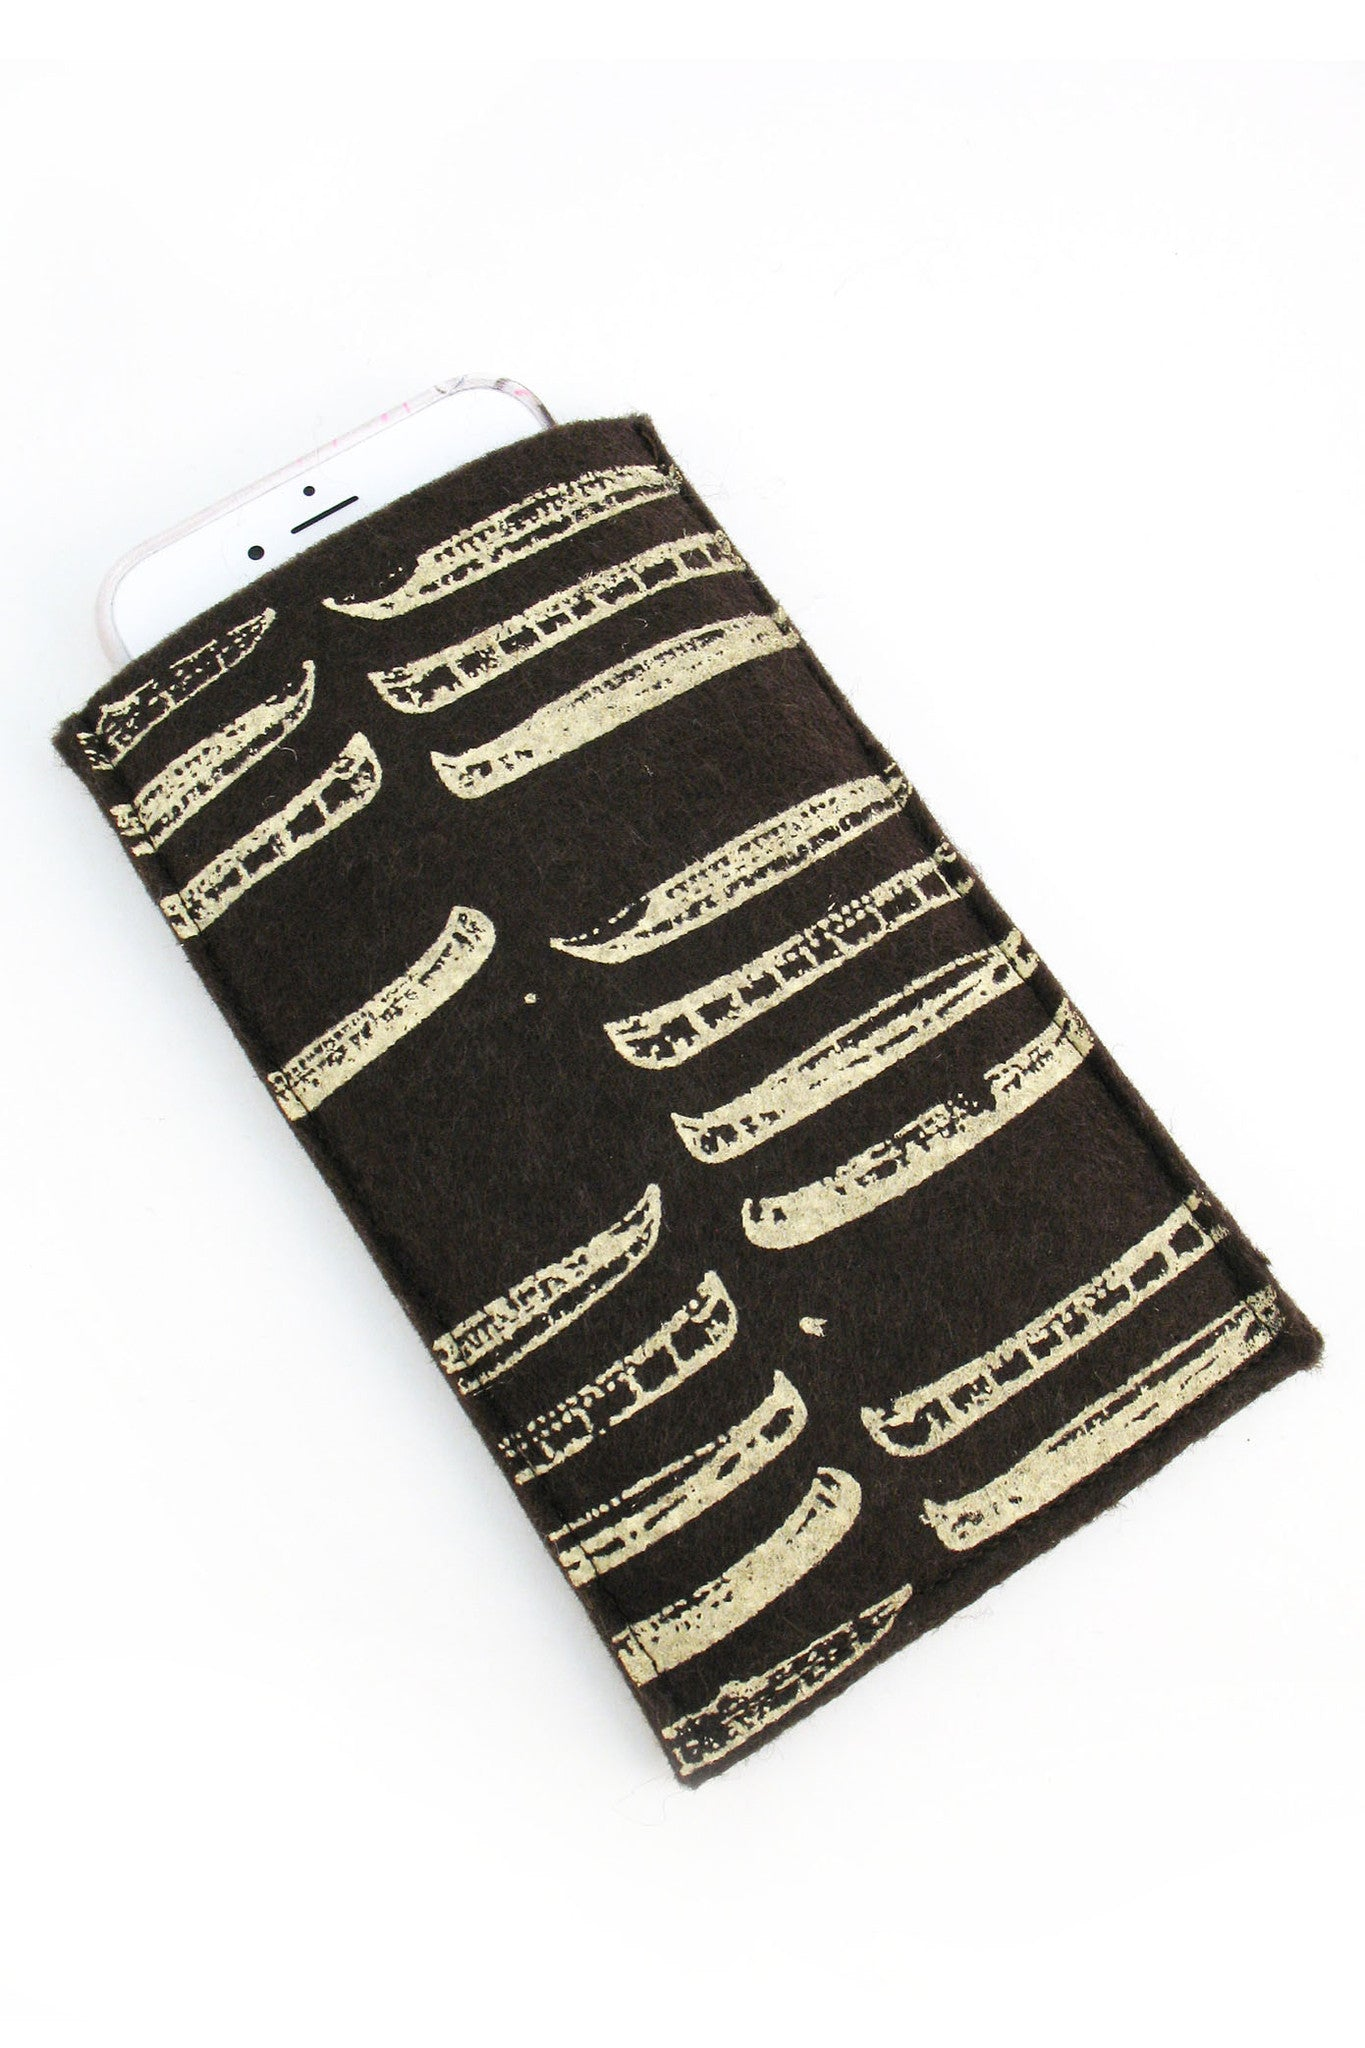 Handmade iPhone Cozy - Canoes